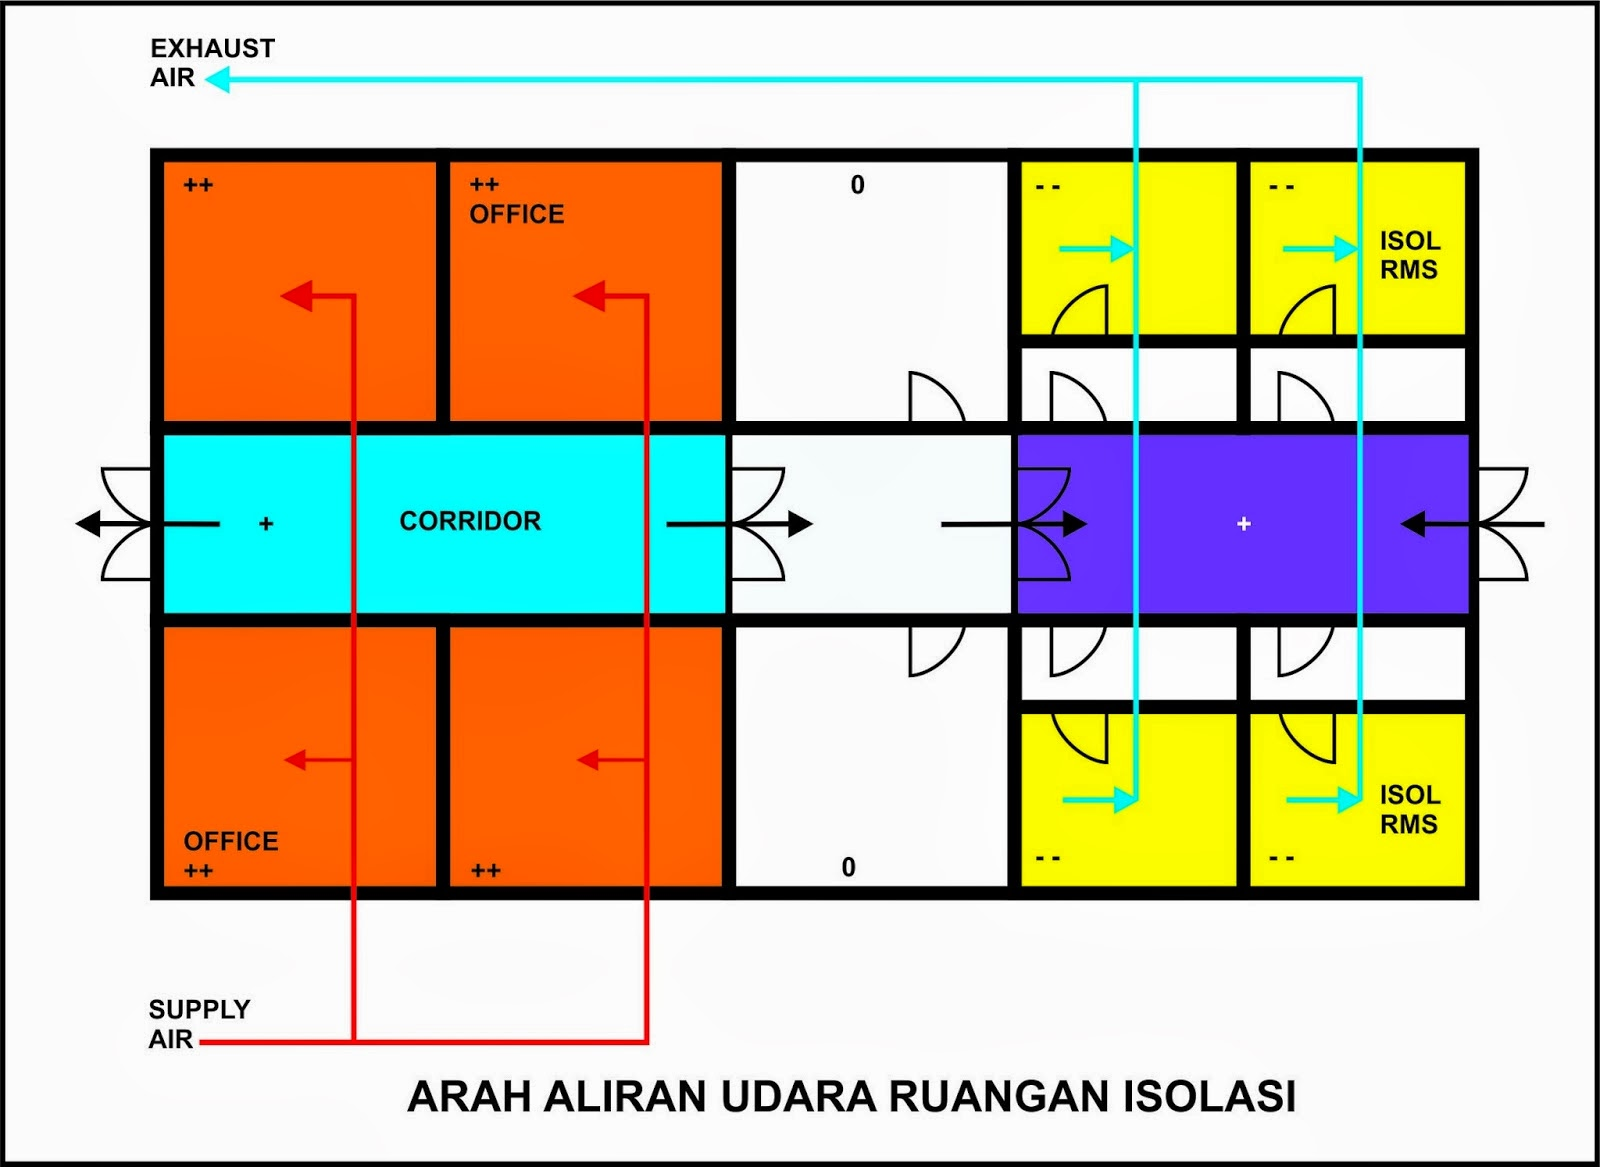 Standar Kelembaban Udara Dalam Ruangan Hvacr And Clean Room Product October 2013